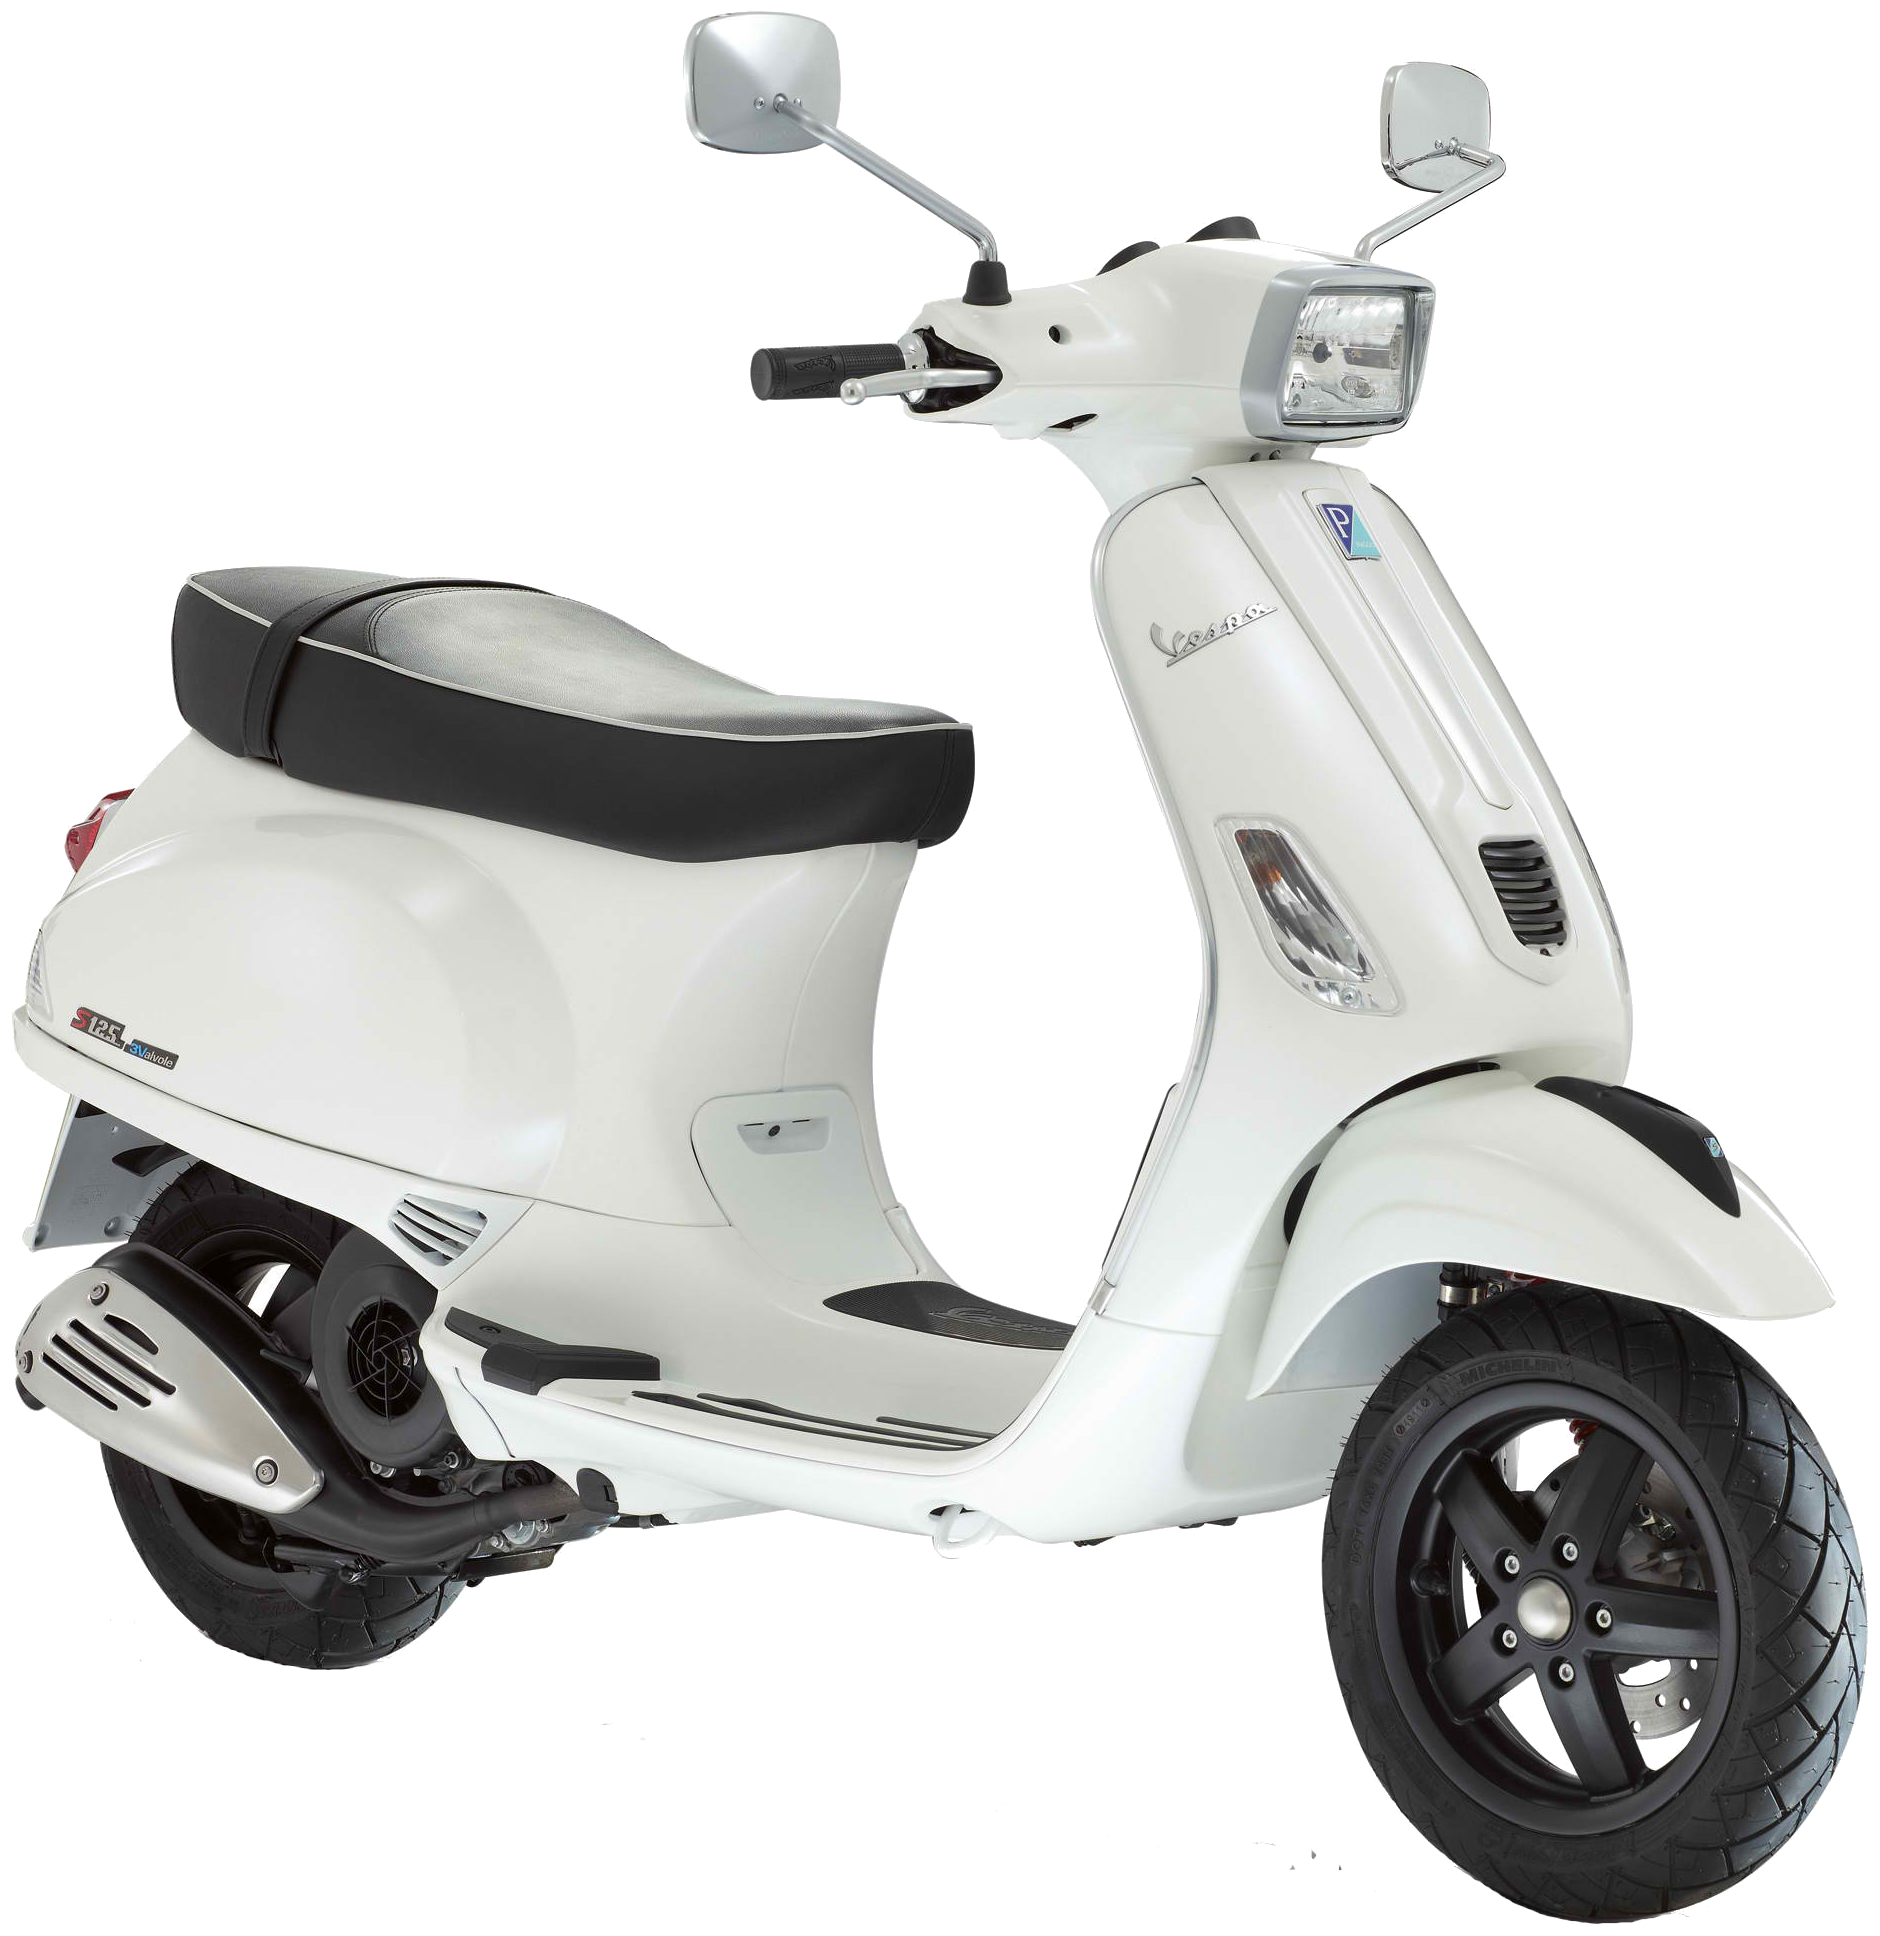 White scooter PNG image